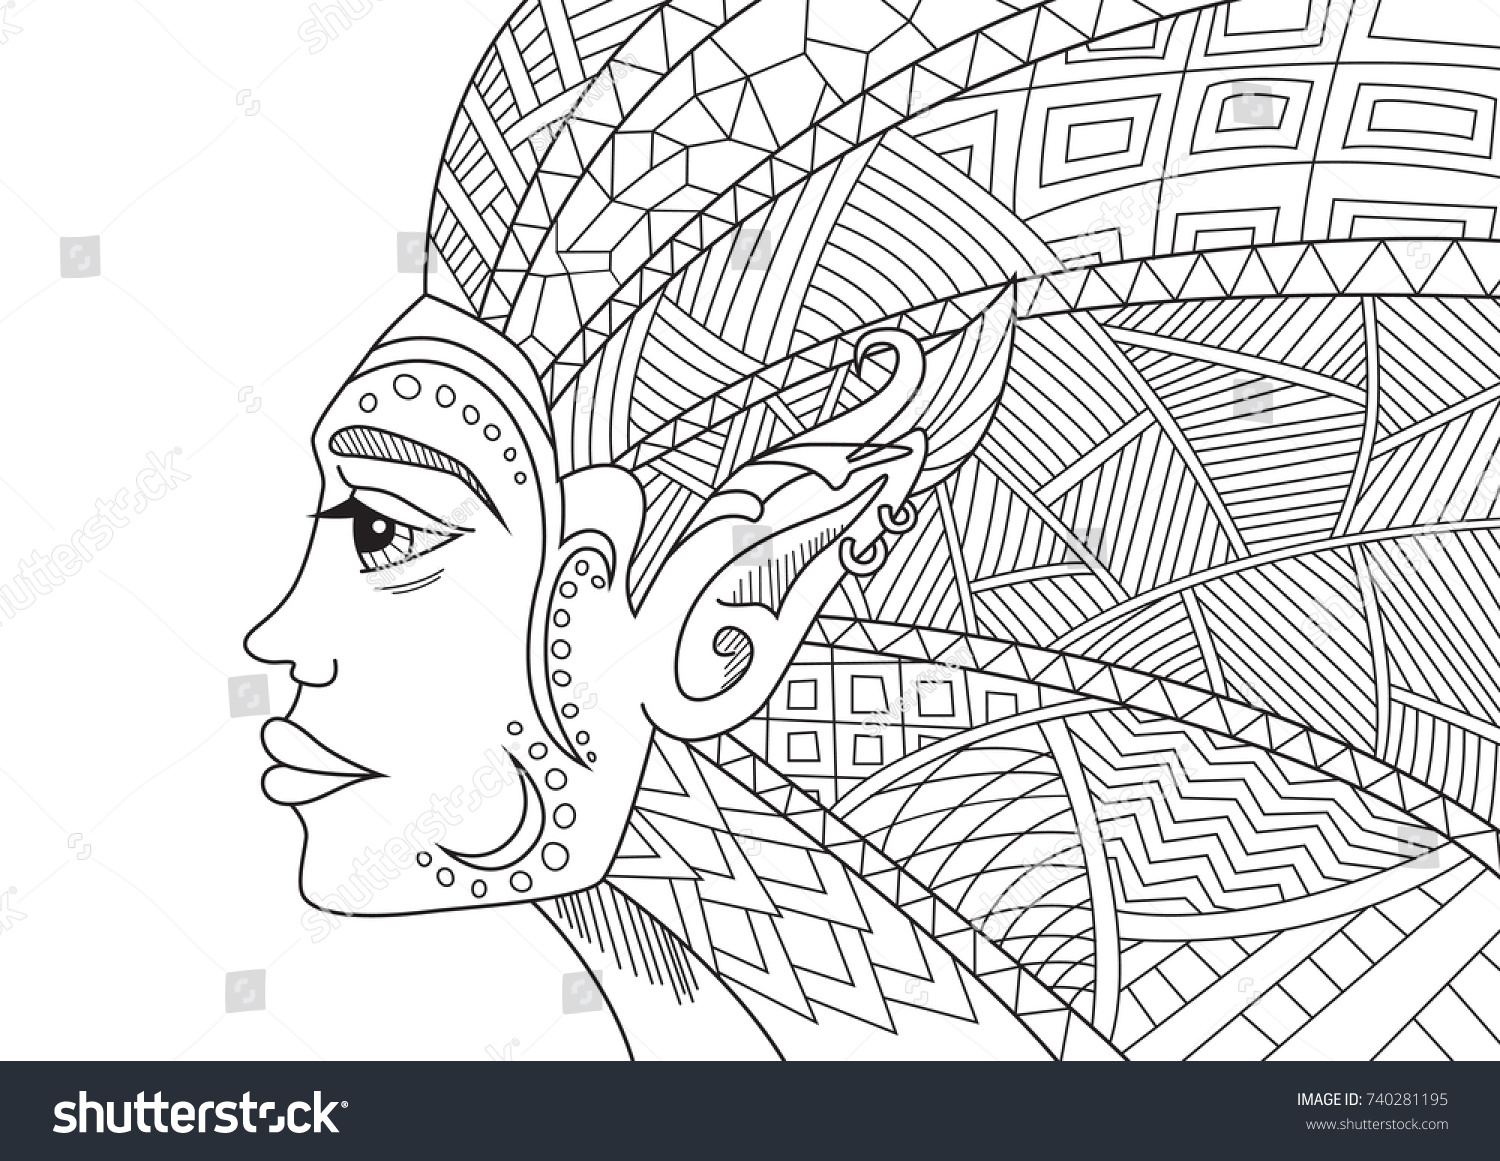 Outlined Doodle Antistress Coloring Fairy Elf Stock Vector 740281195 ...